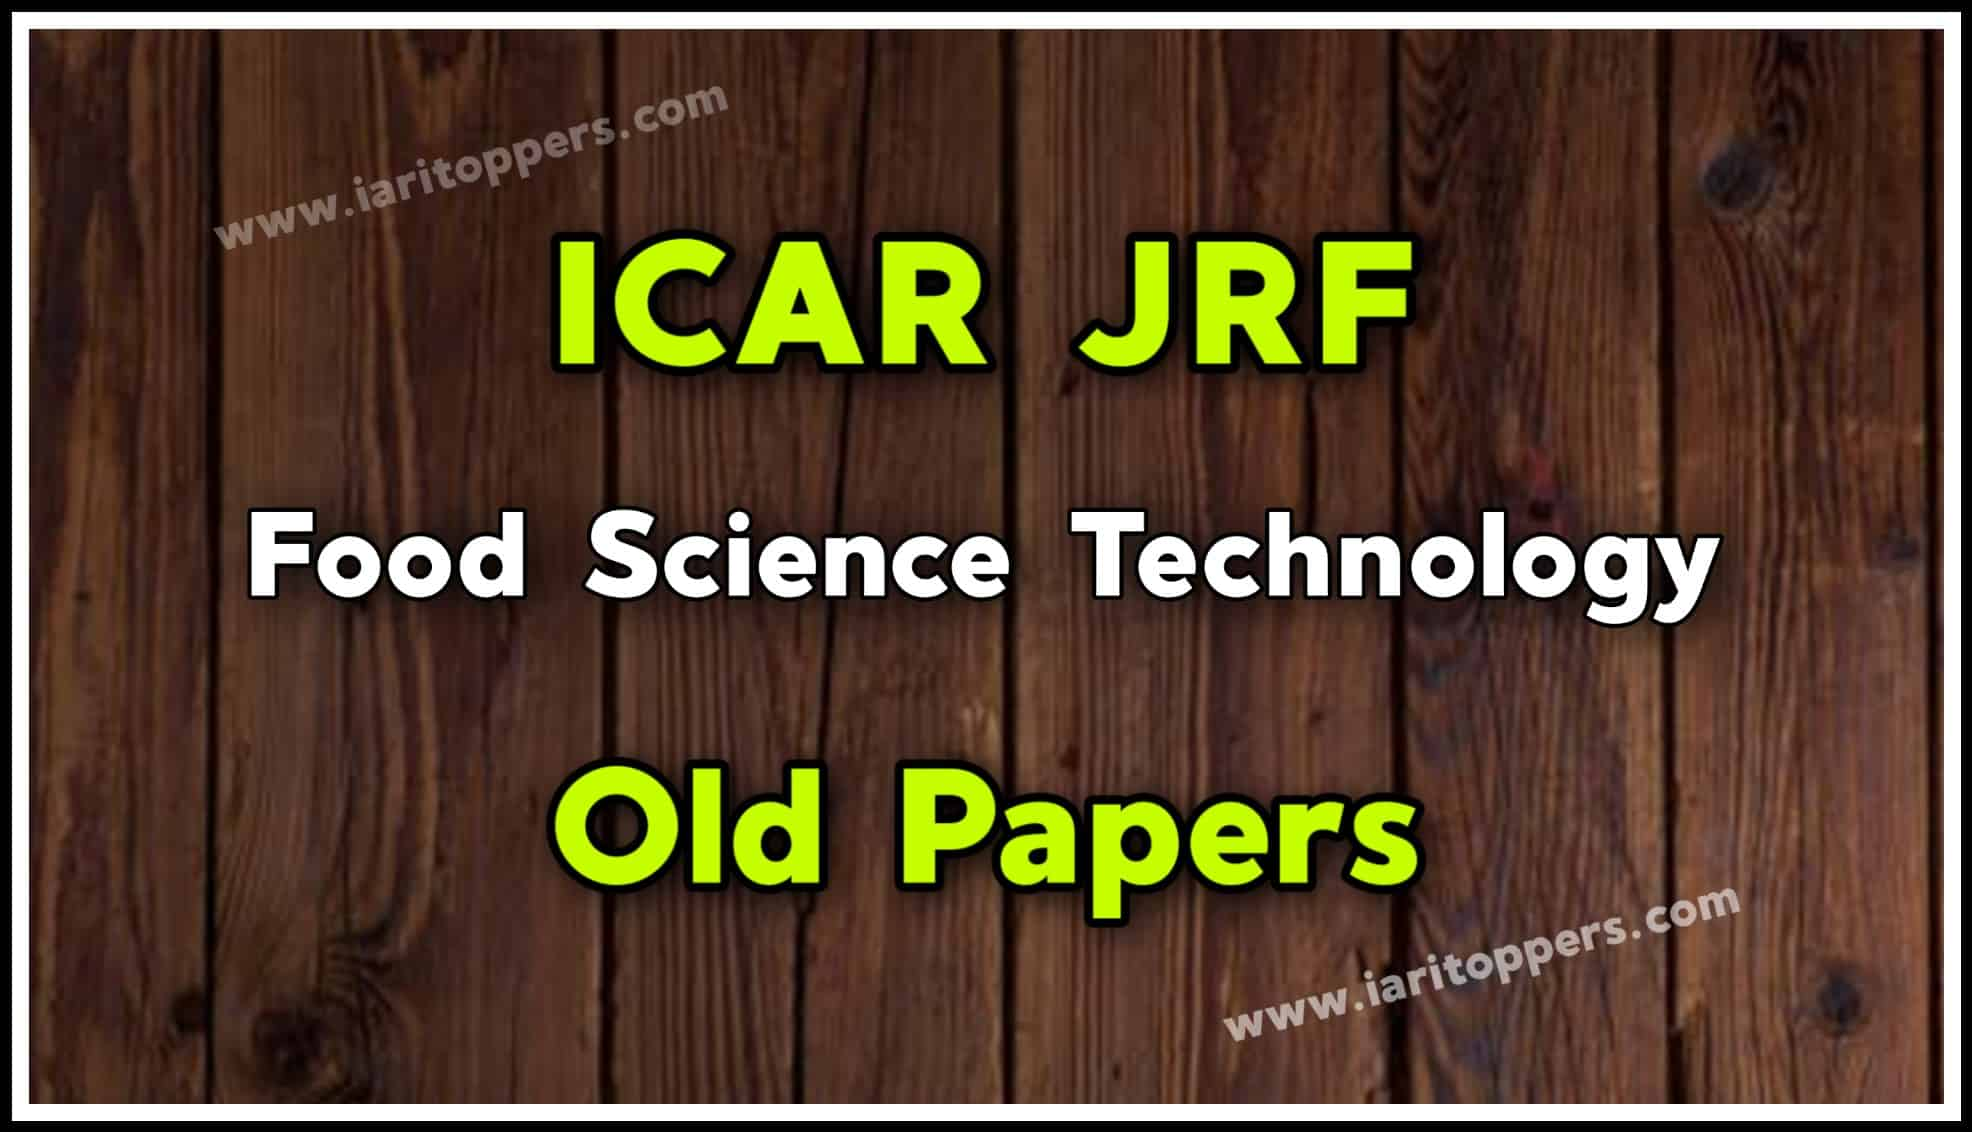 ICAR JRF Food Science Technology Old Papers PDF Download